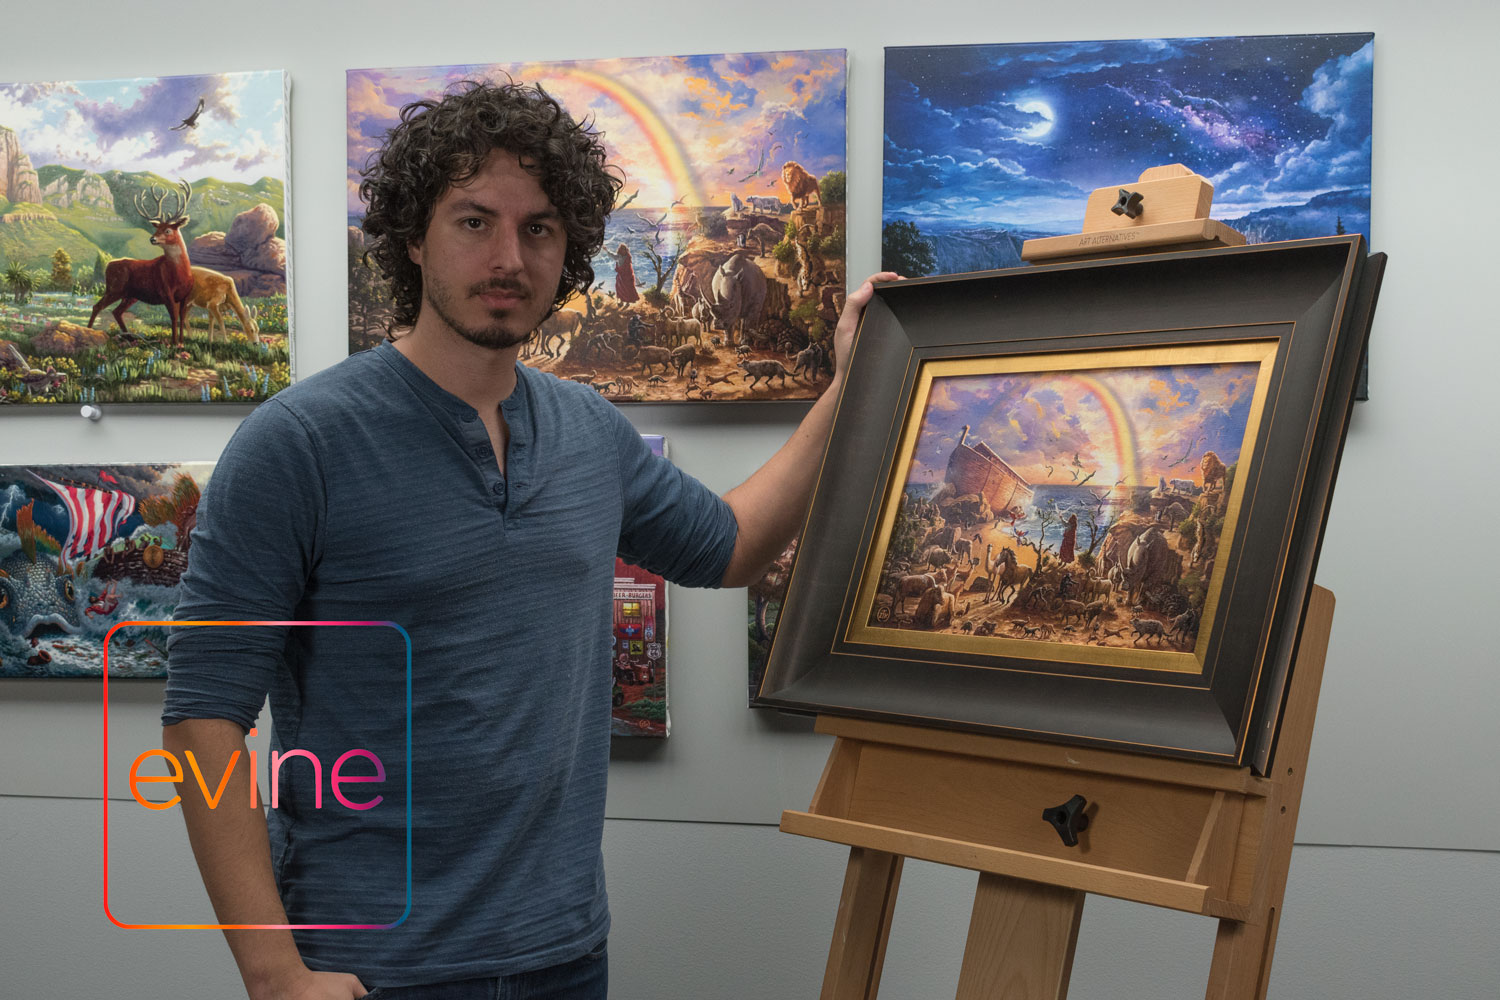 Zac Thomas Kinkade - Back on Evine